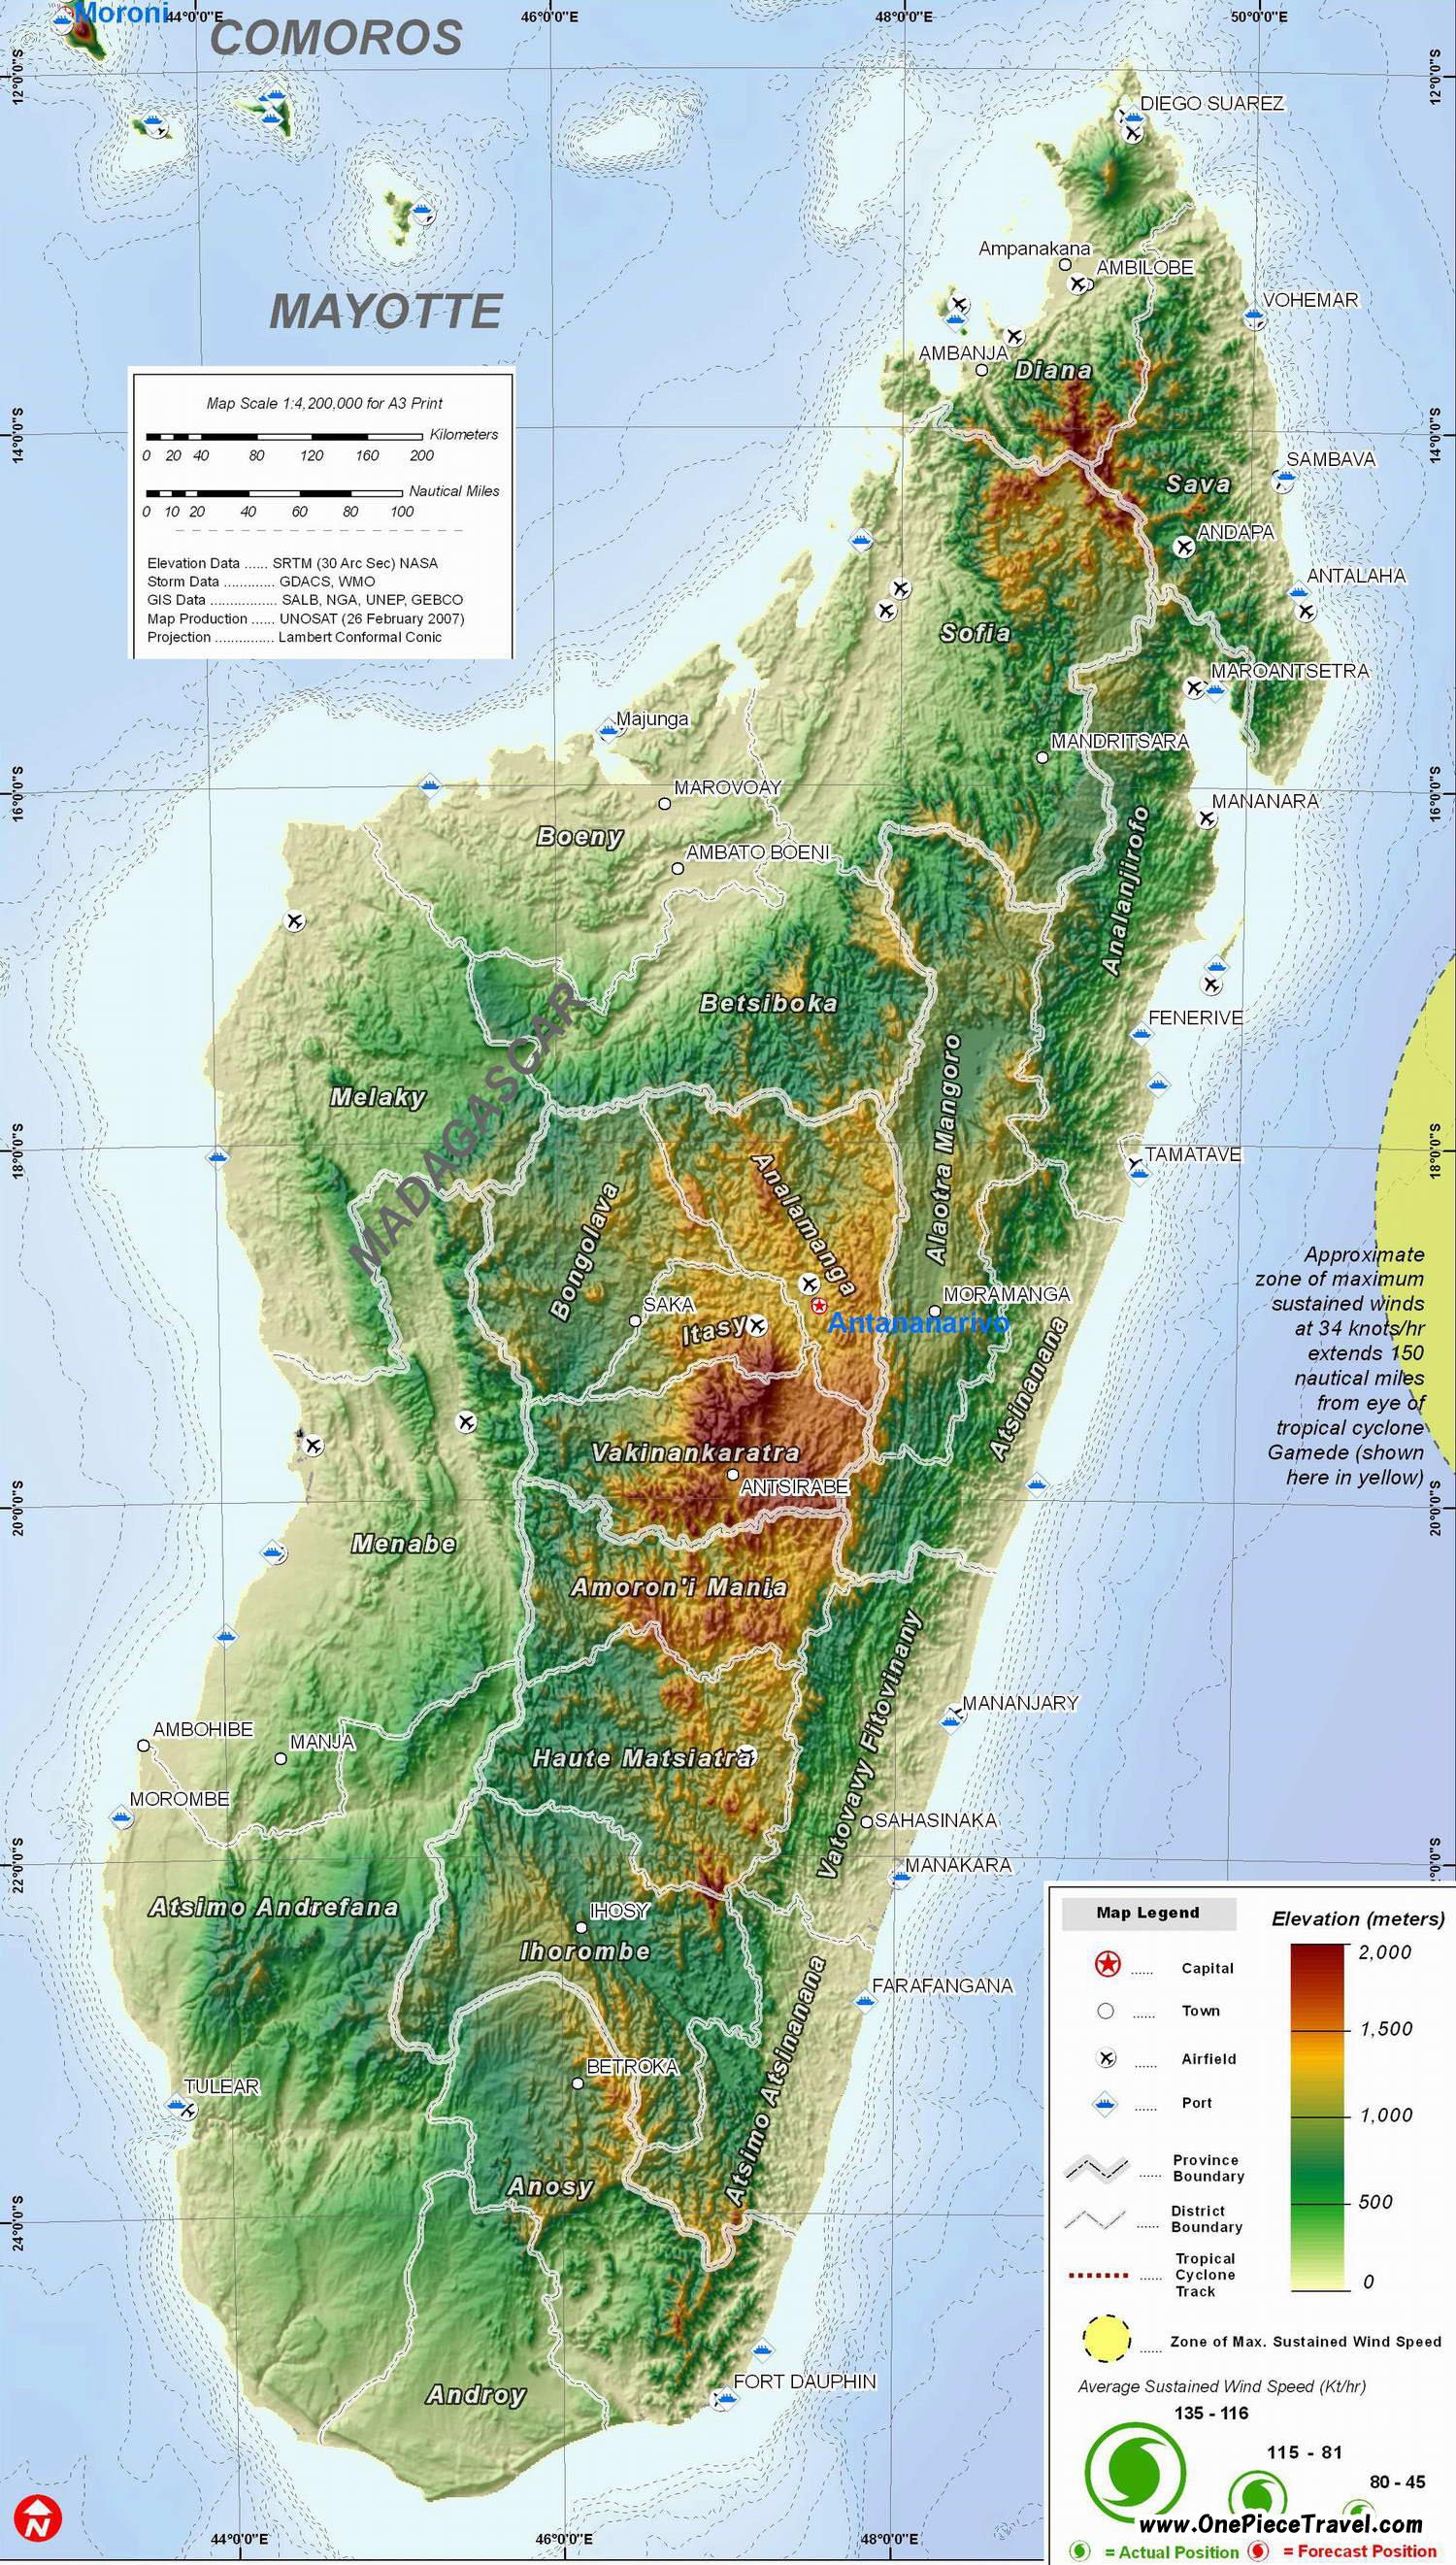 Madagascar Tourist Attractions and Travel – Madagascar Tourist Attractions Map